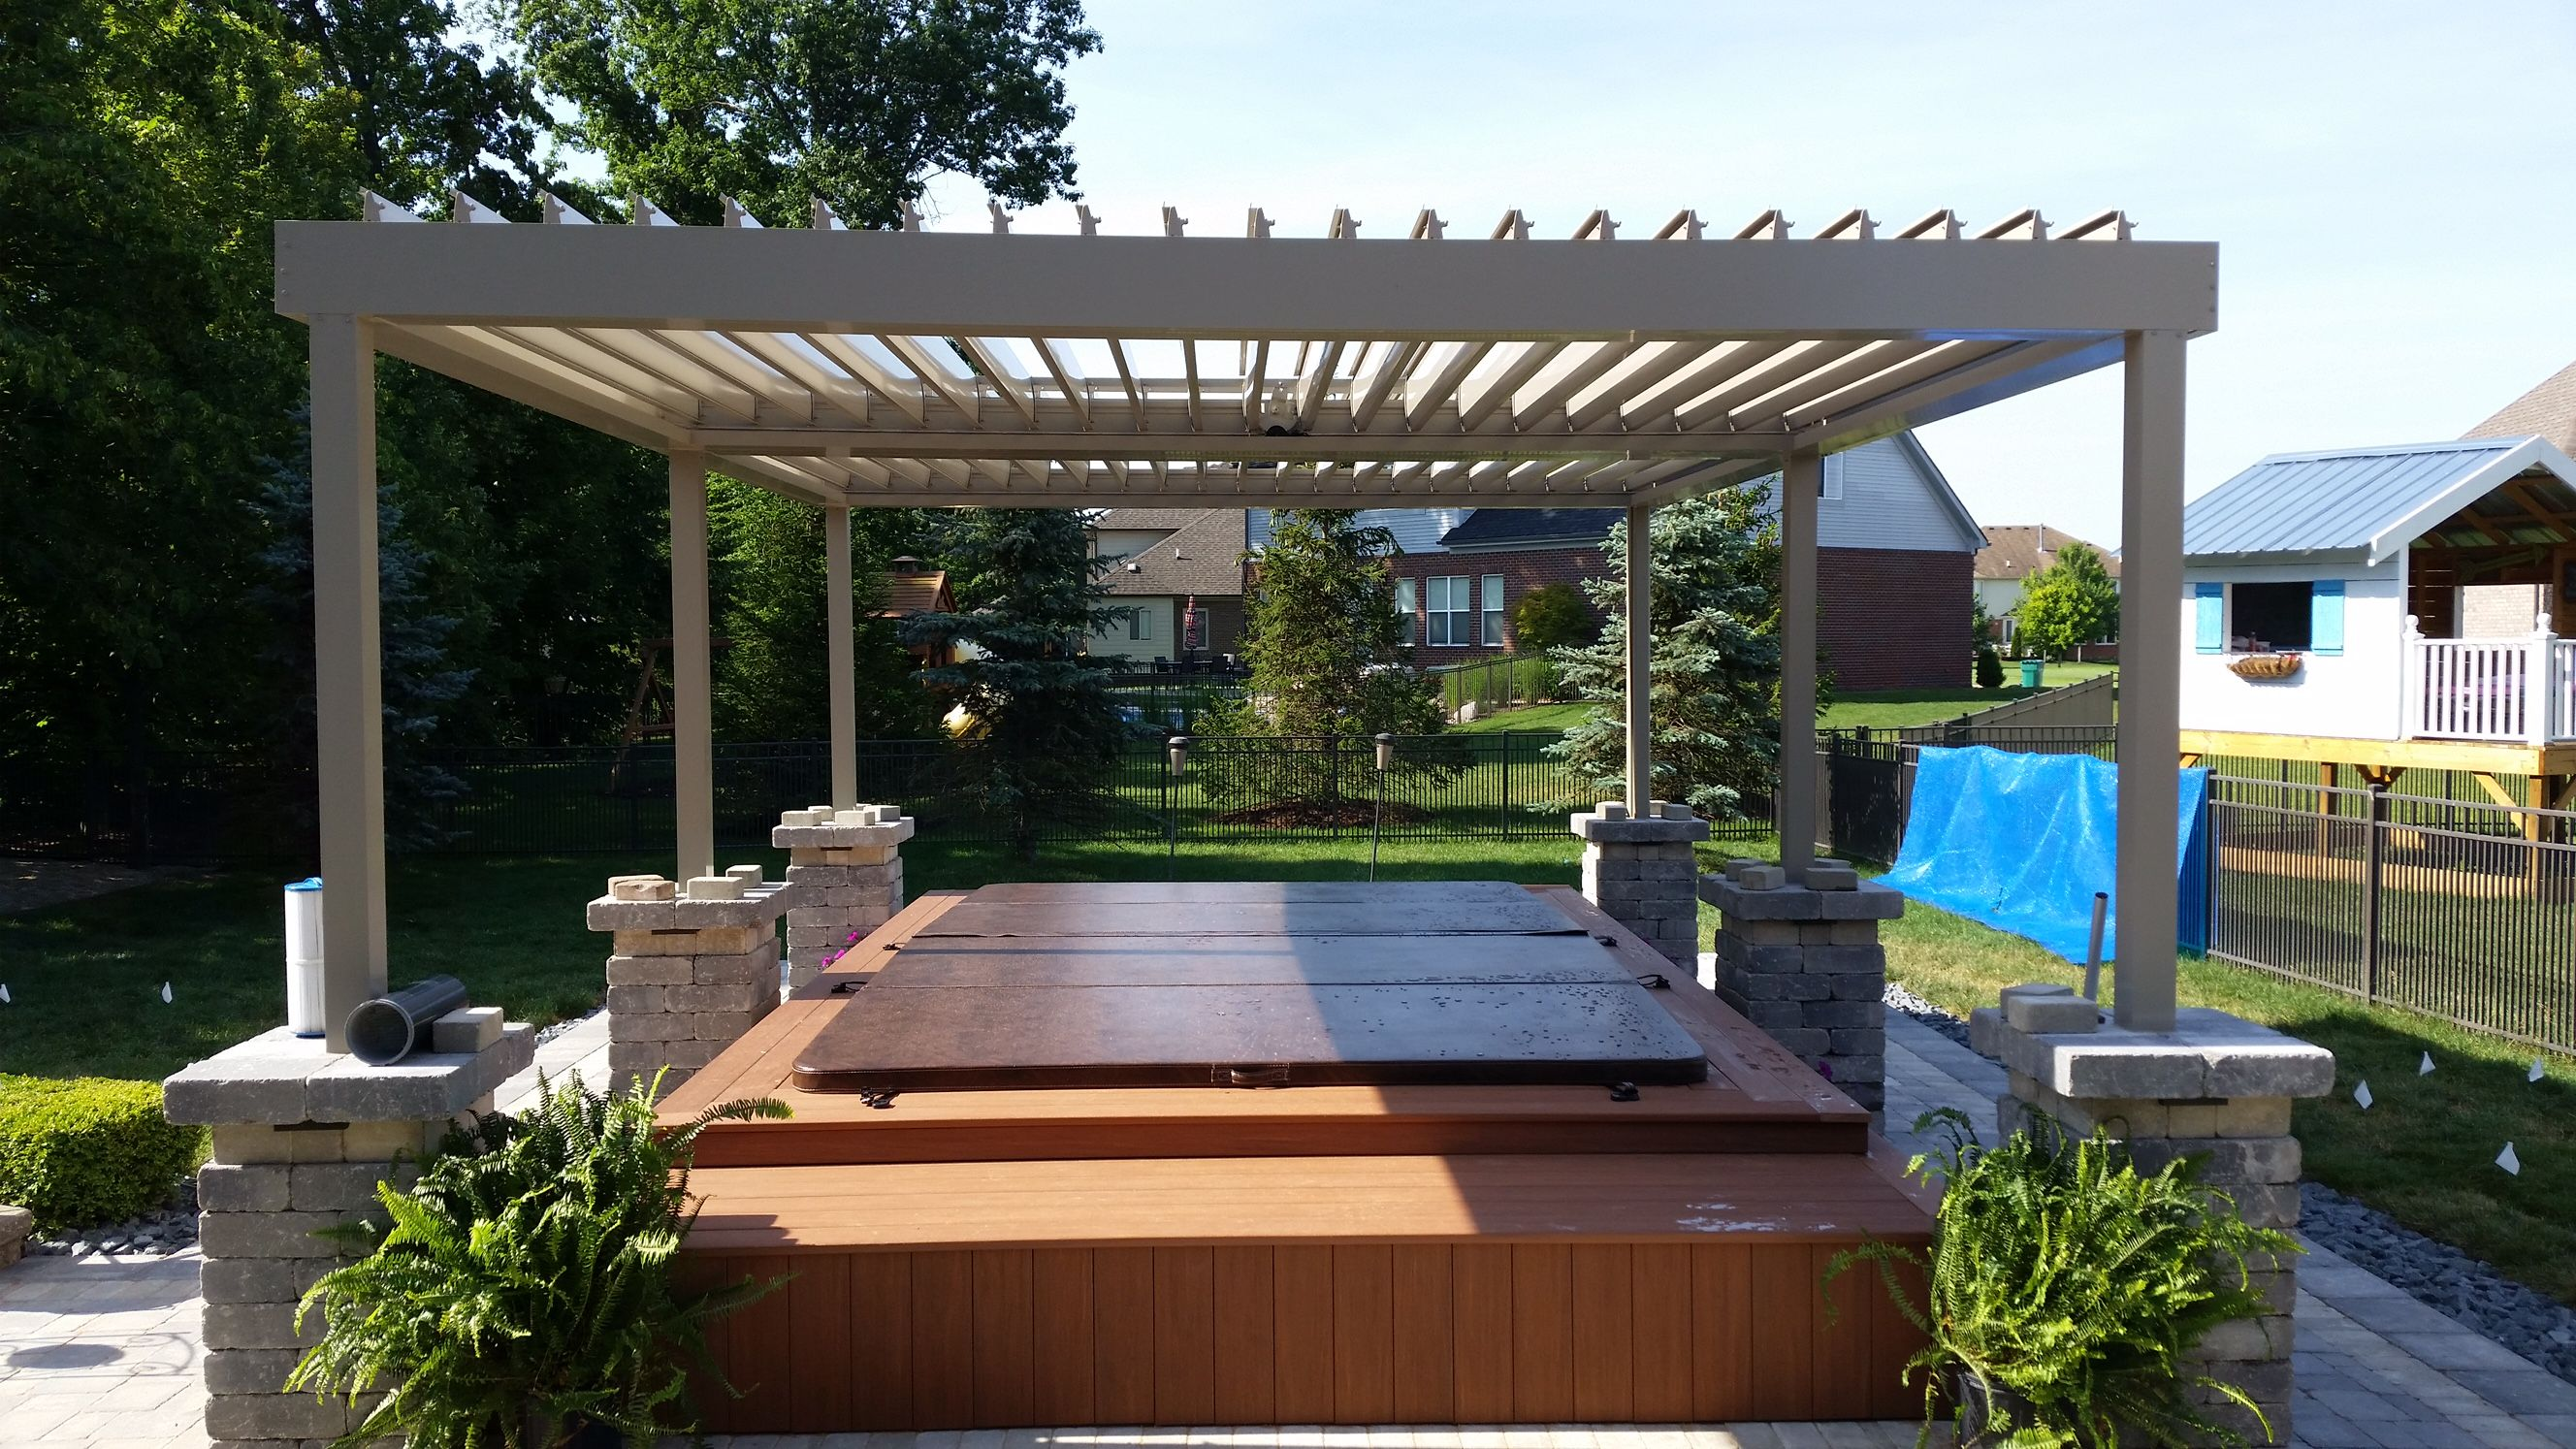 Motor In Center Color Clay Equinox Louvered Roof Gallery Mr Enclosure Michigan Sunrooms Awnings Screenrooms Patio Cove Covered Patio Patio Shade Structure